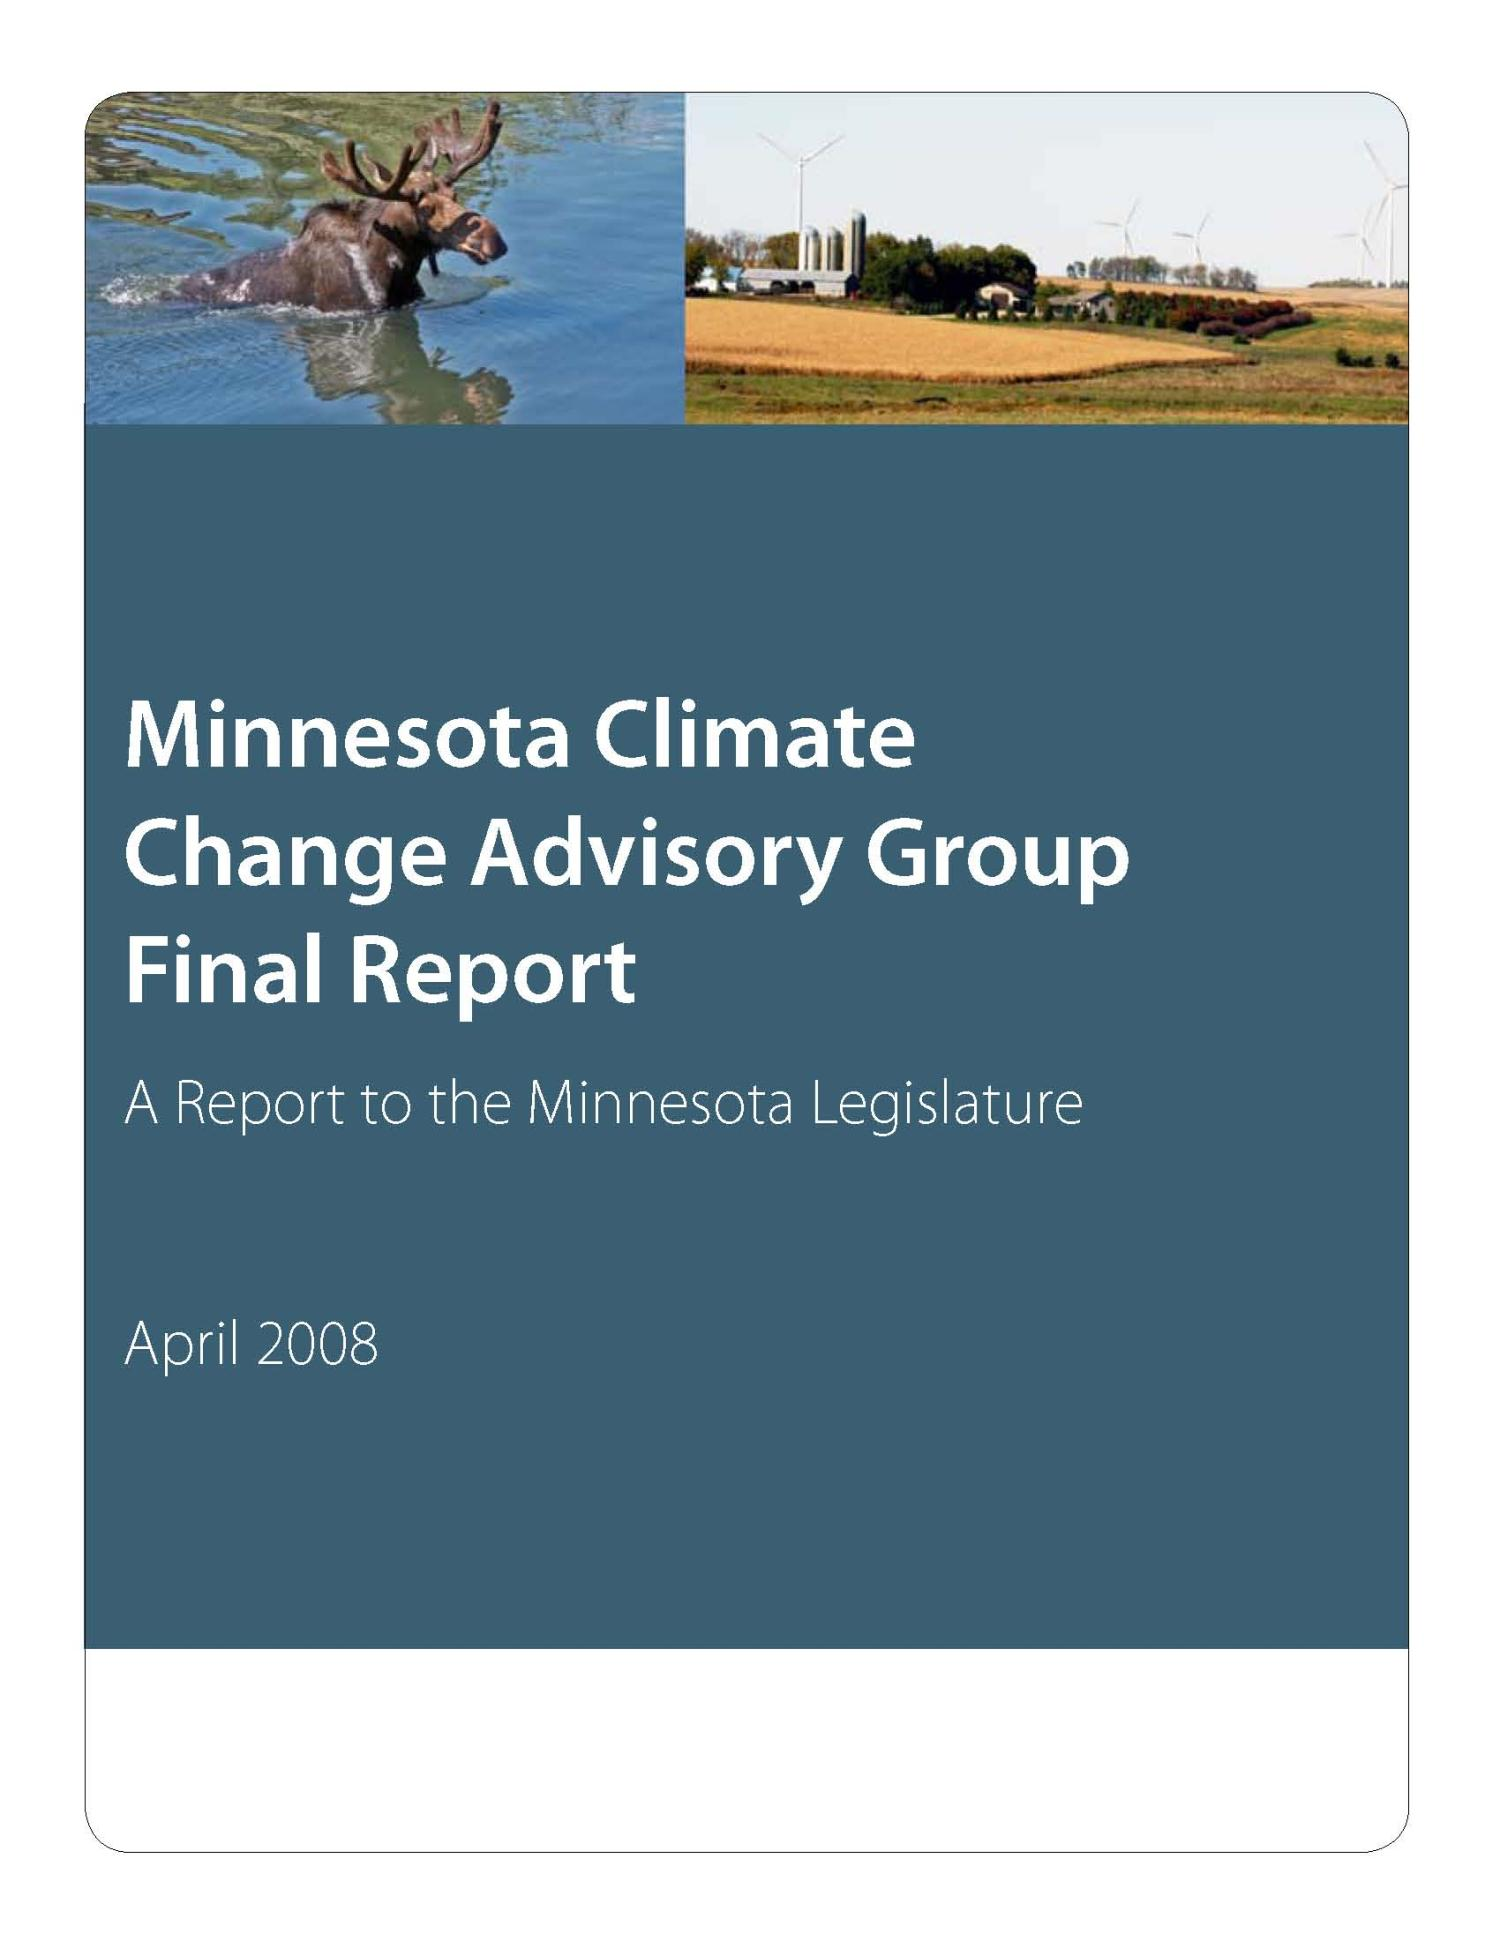 Beyond Kyoto, Manitoba's Green Future : Next Steps, 2008 Action on Climate Change                                                                                                      Title Page